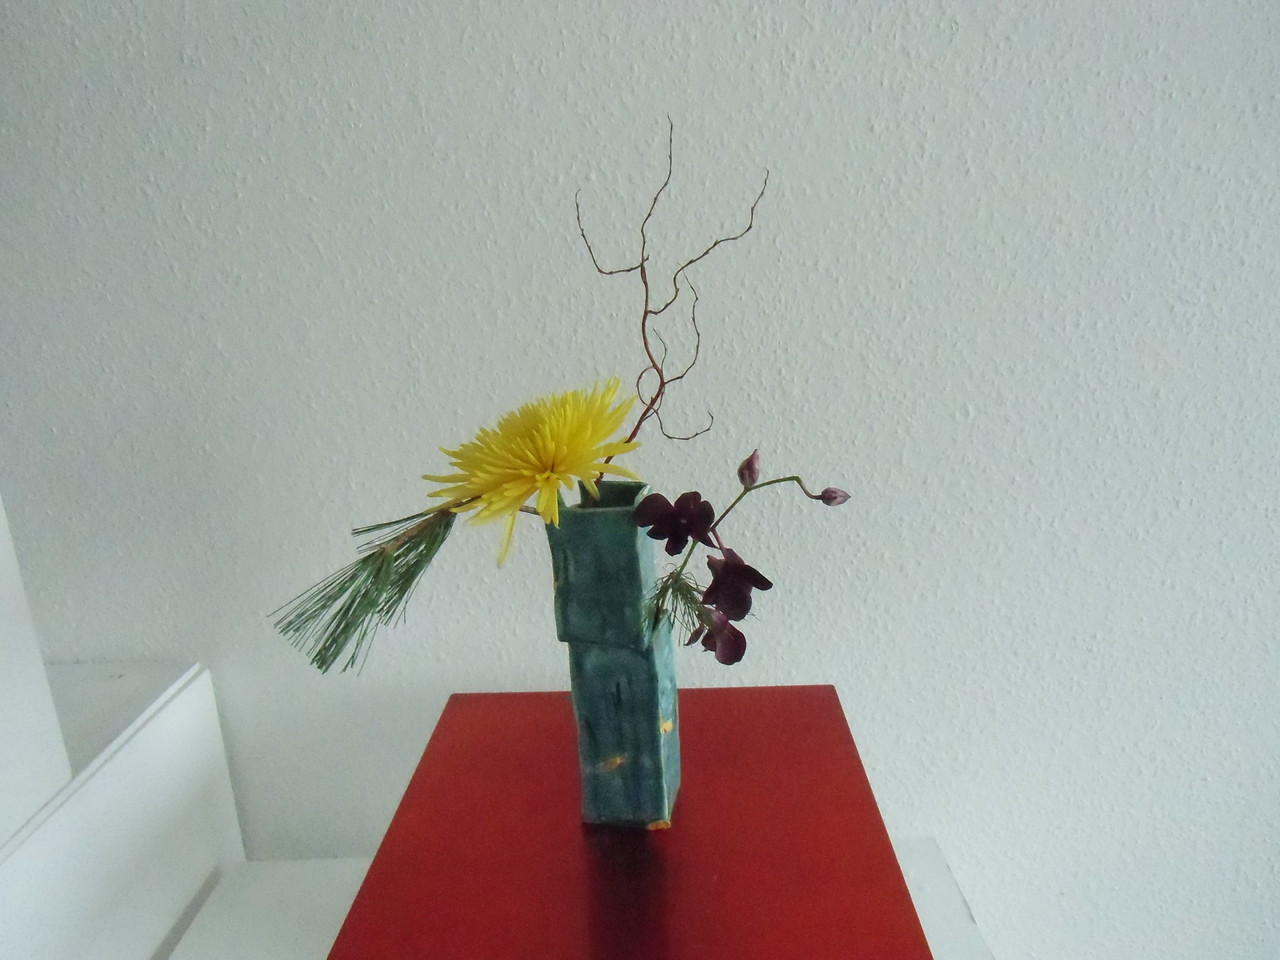 Chrysantheme und Dendrobie in Interessanter Vase